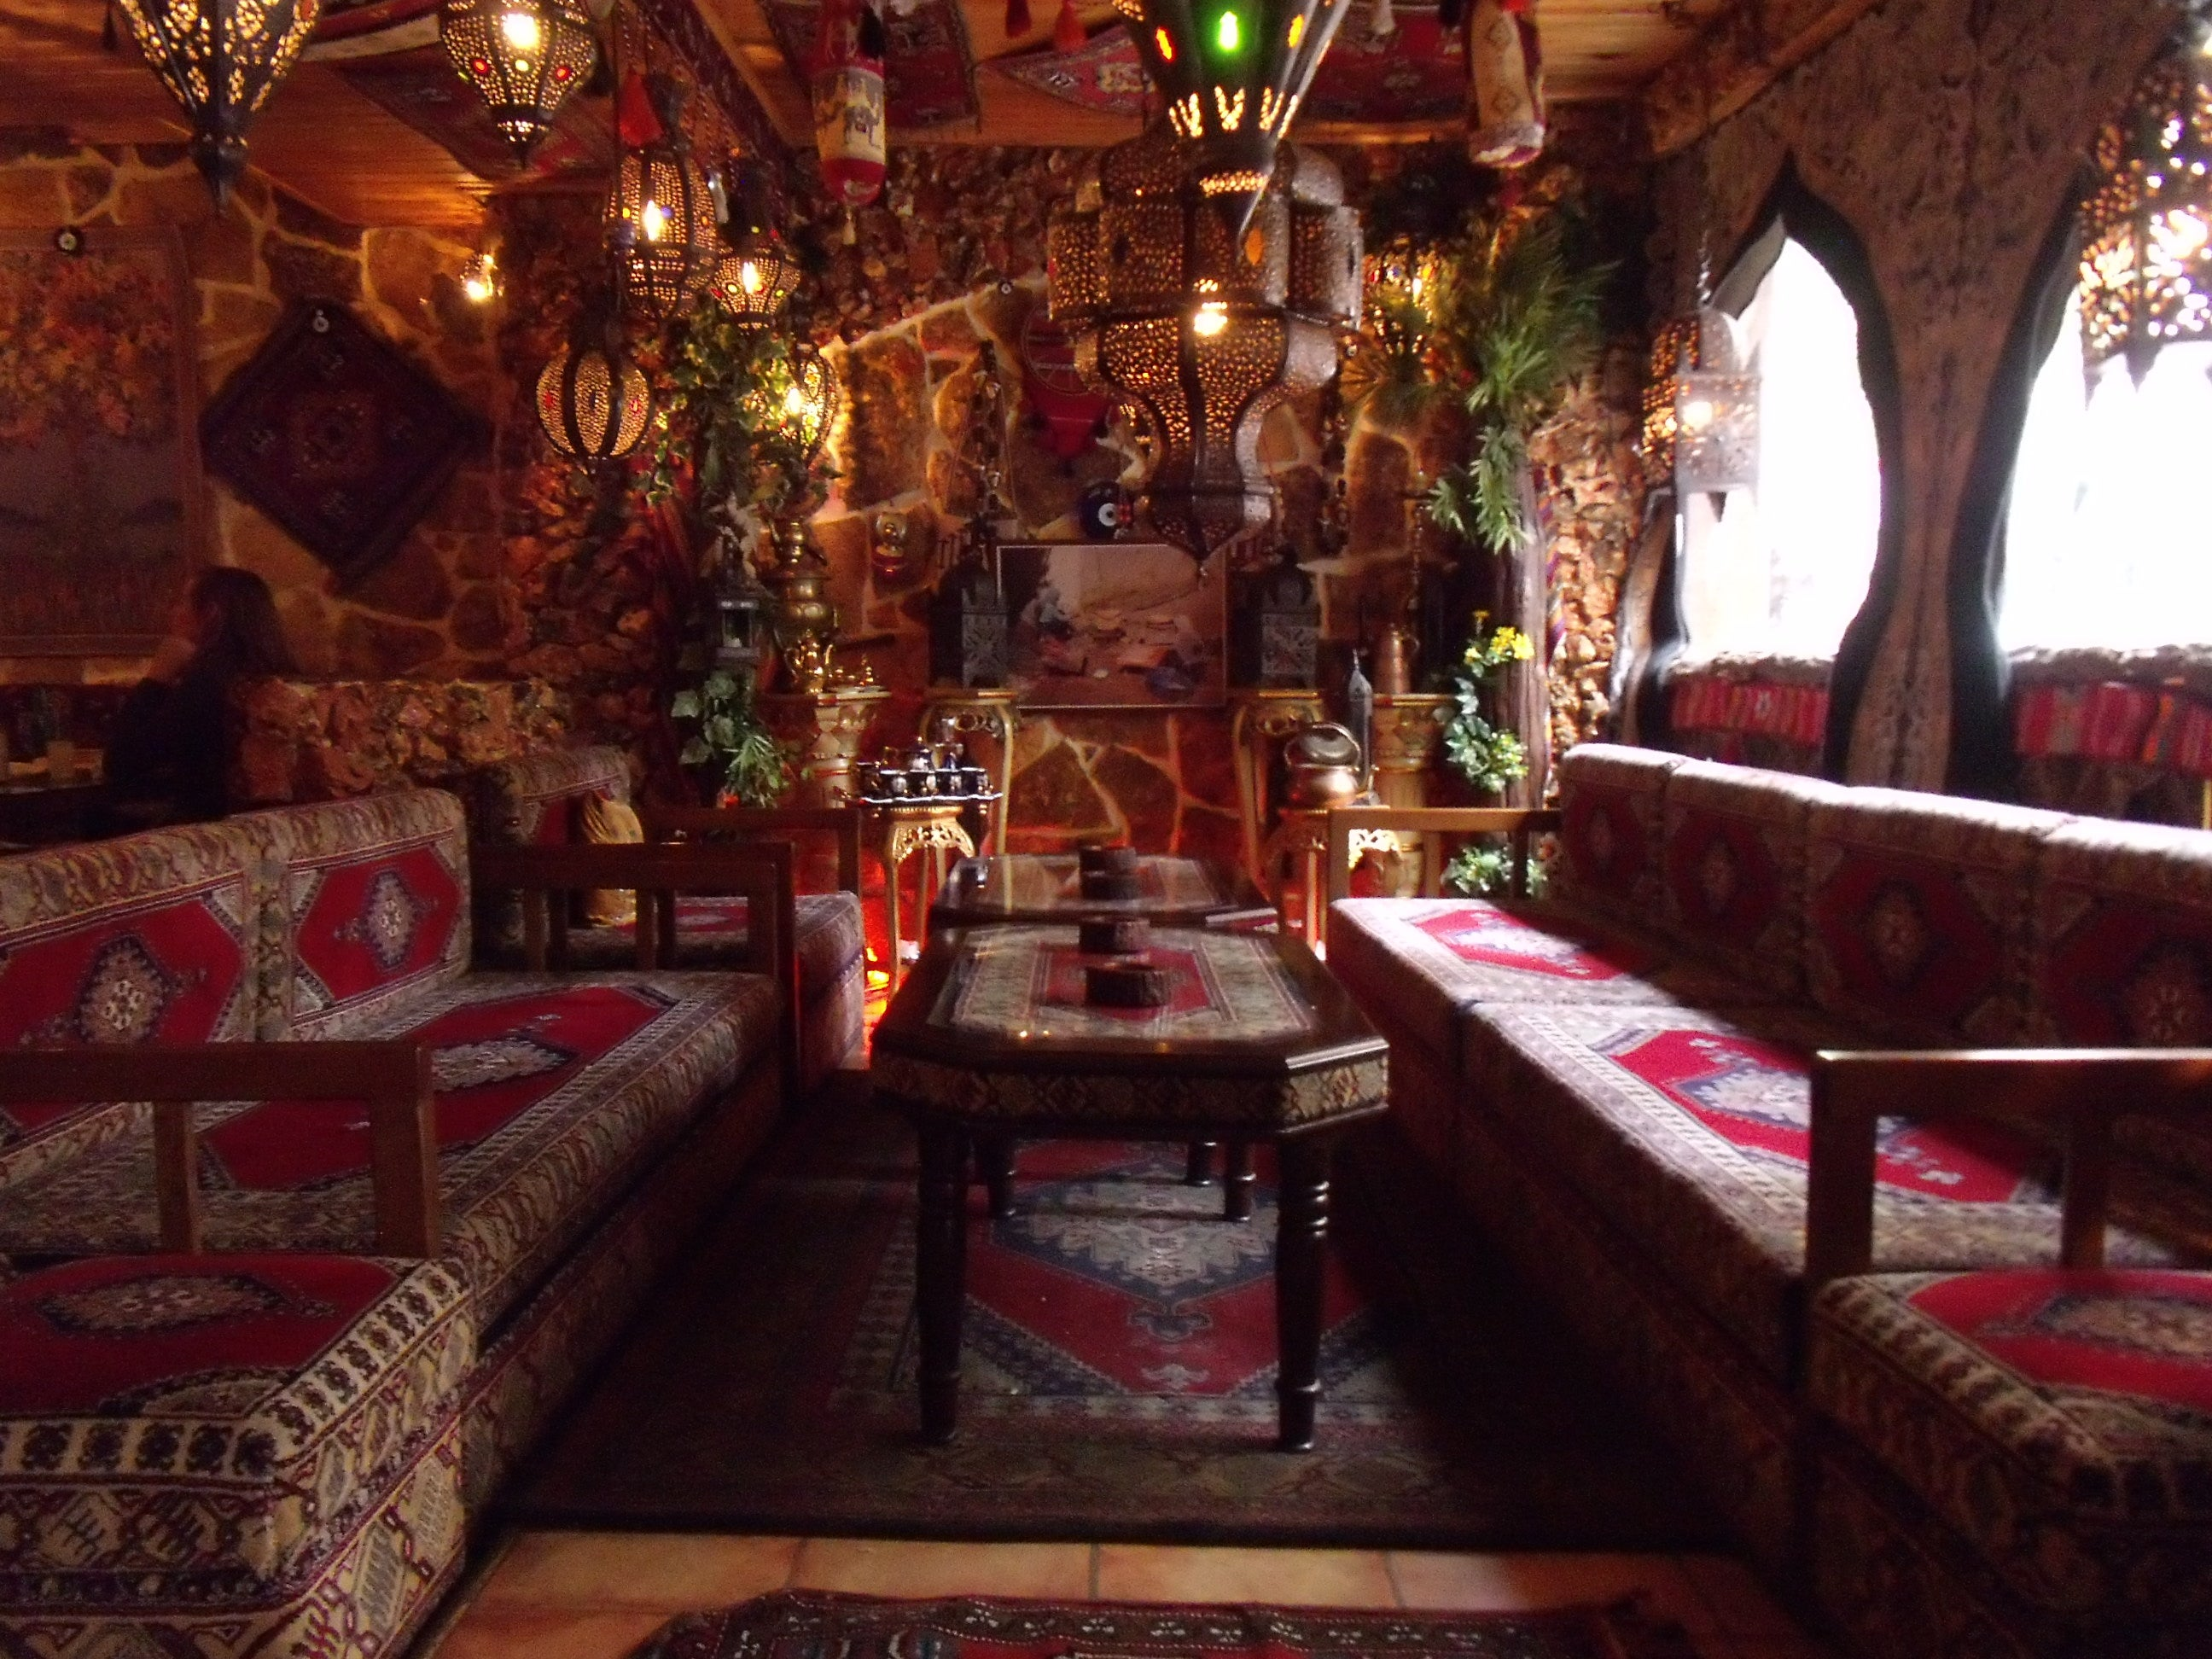 Taco Turkish Restaurant in Elche: 4 reviews and 11 photos